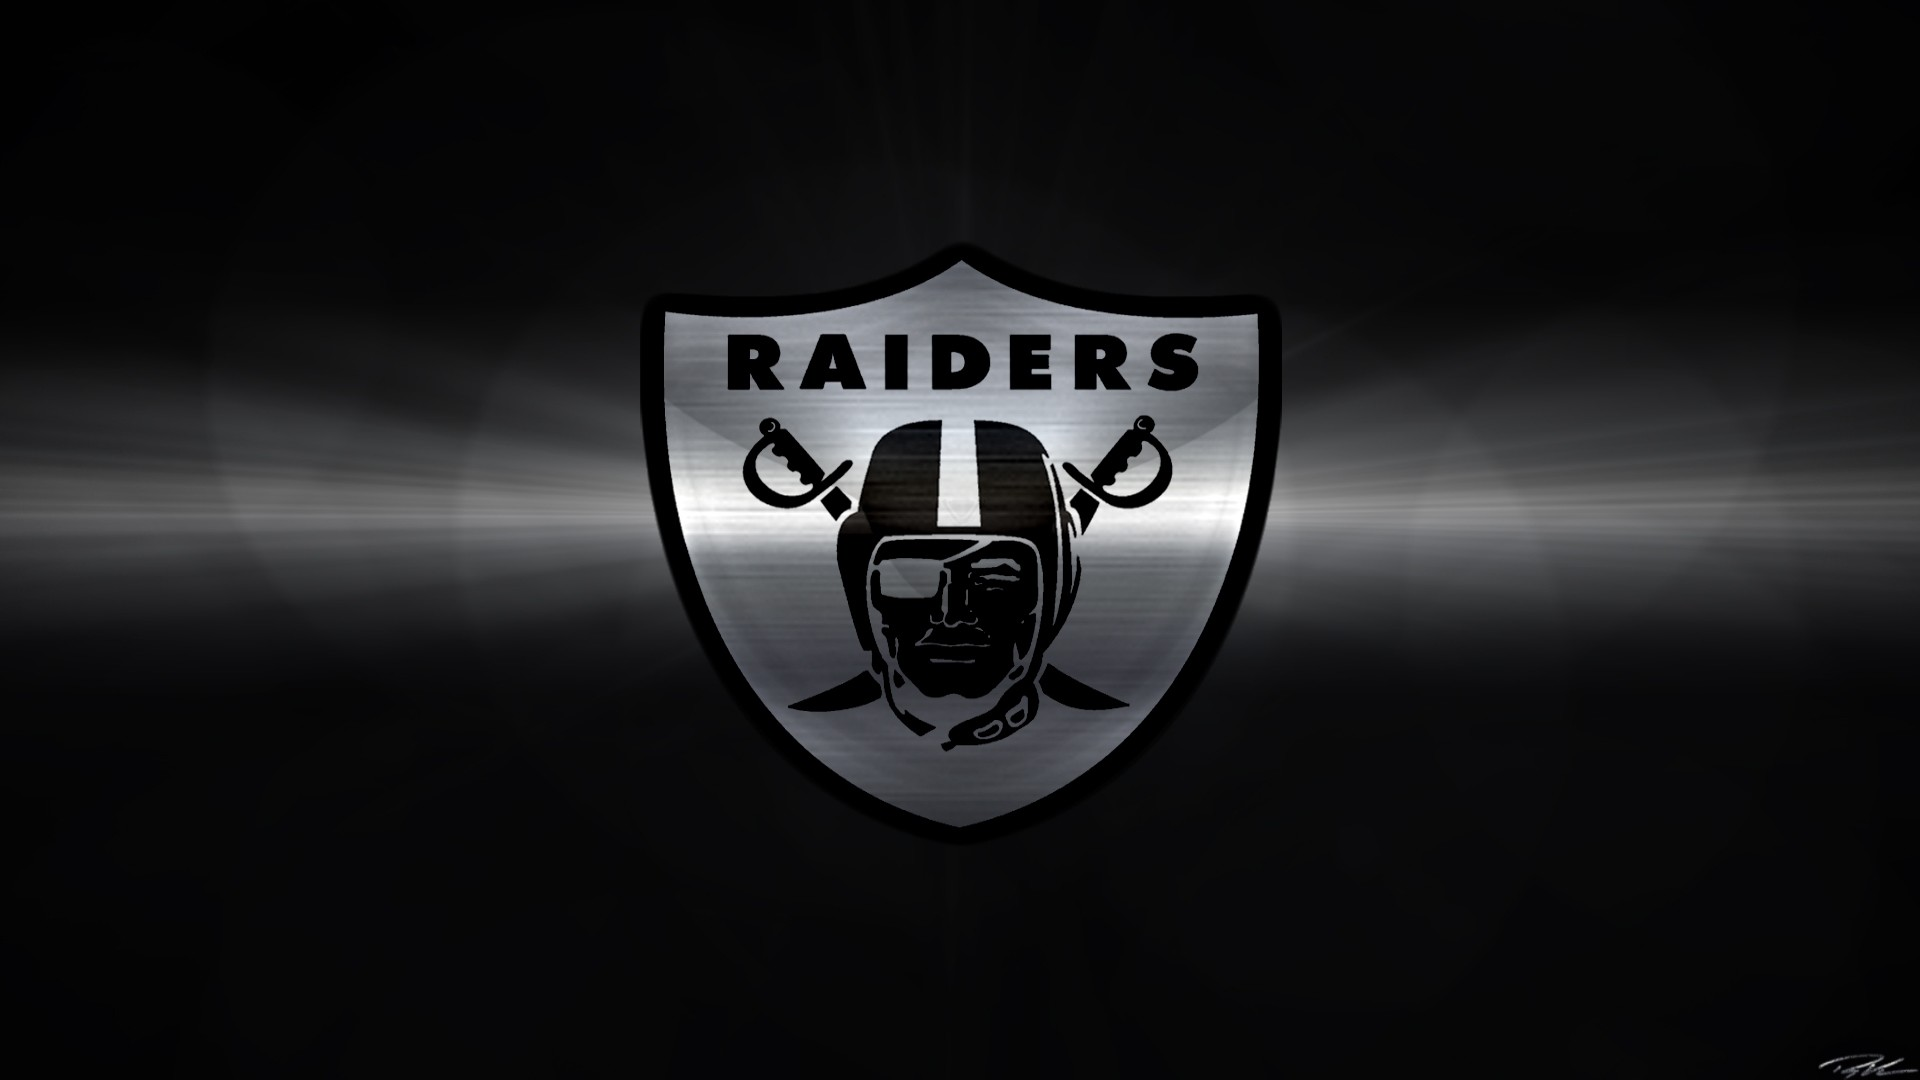 1920x1080 Oakland Raiders wallpaper 1024×768 Oakland Raiders Wallpapers (36 Wallpapers)  | Adorable Wallpapers | Desktop | Pinterest